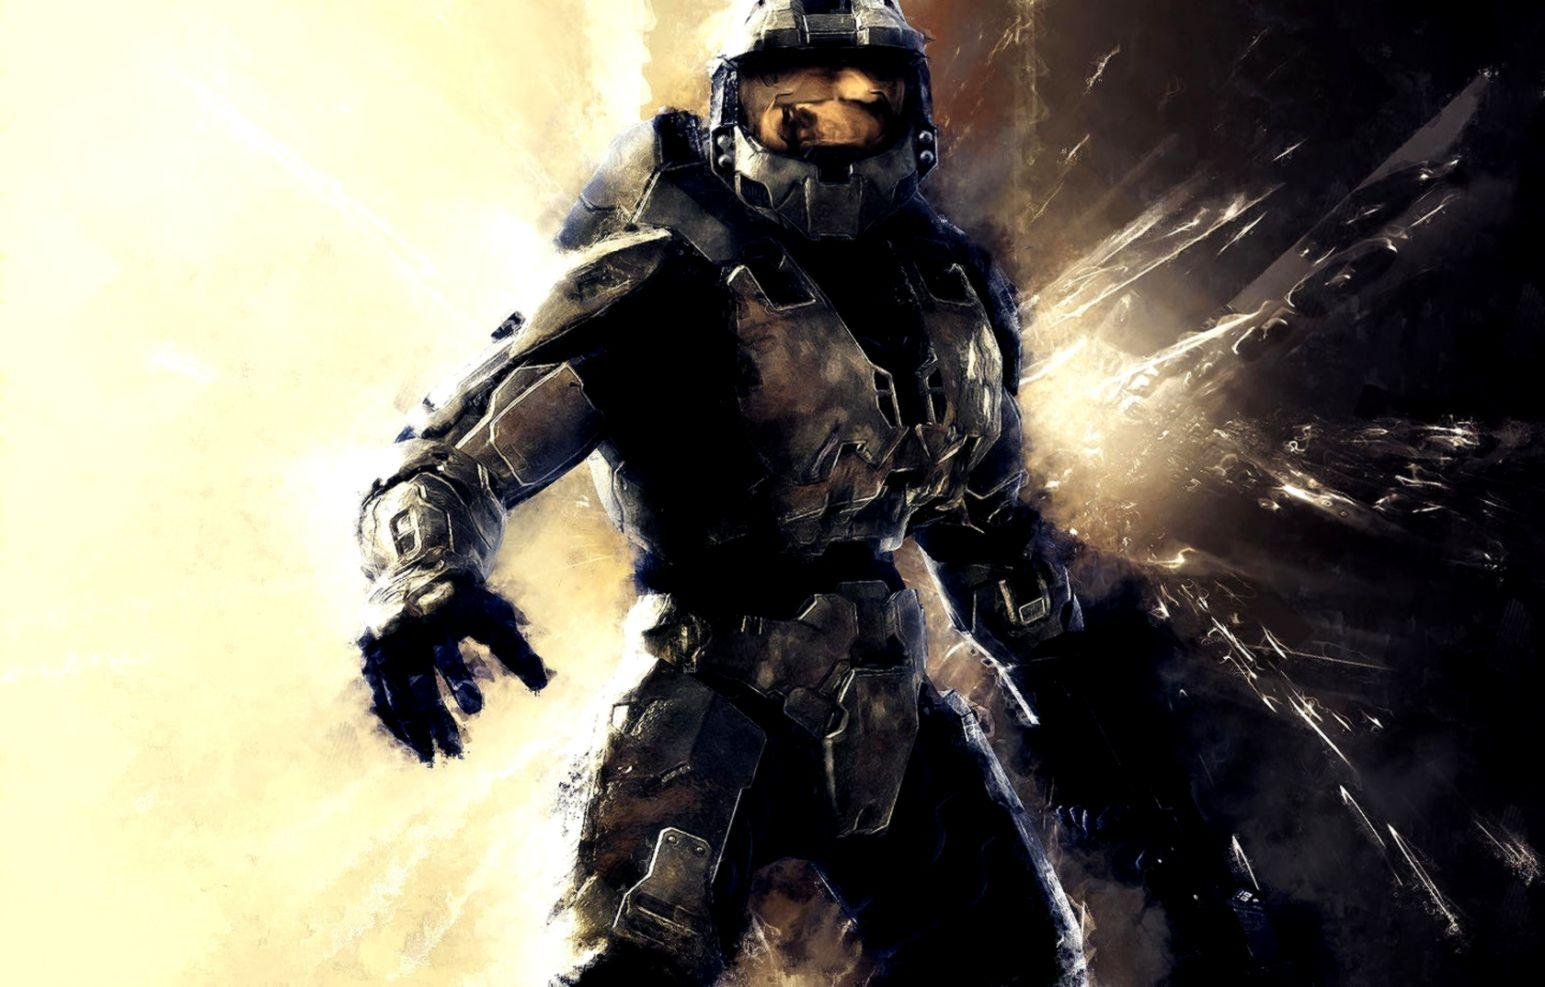 Halo 4 Troops Wallpapers